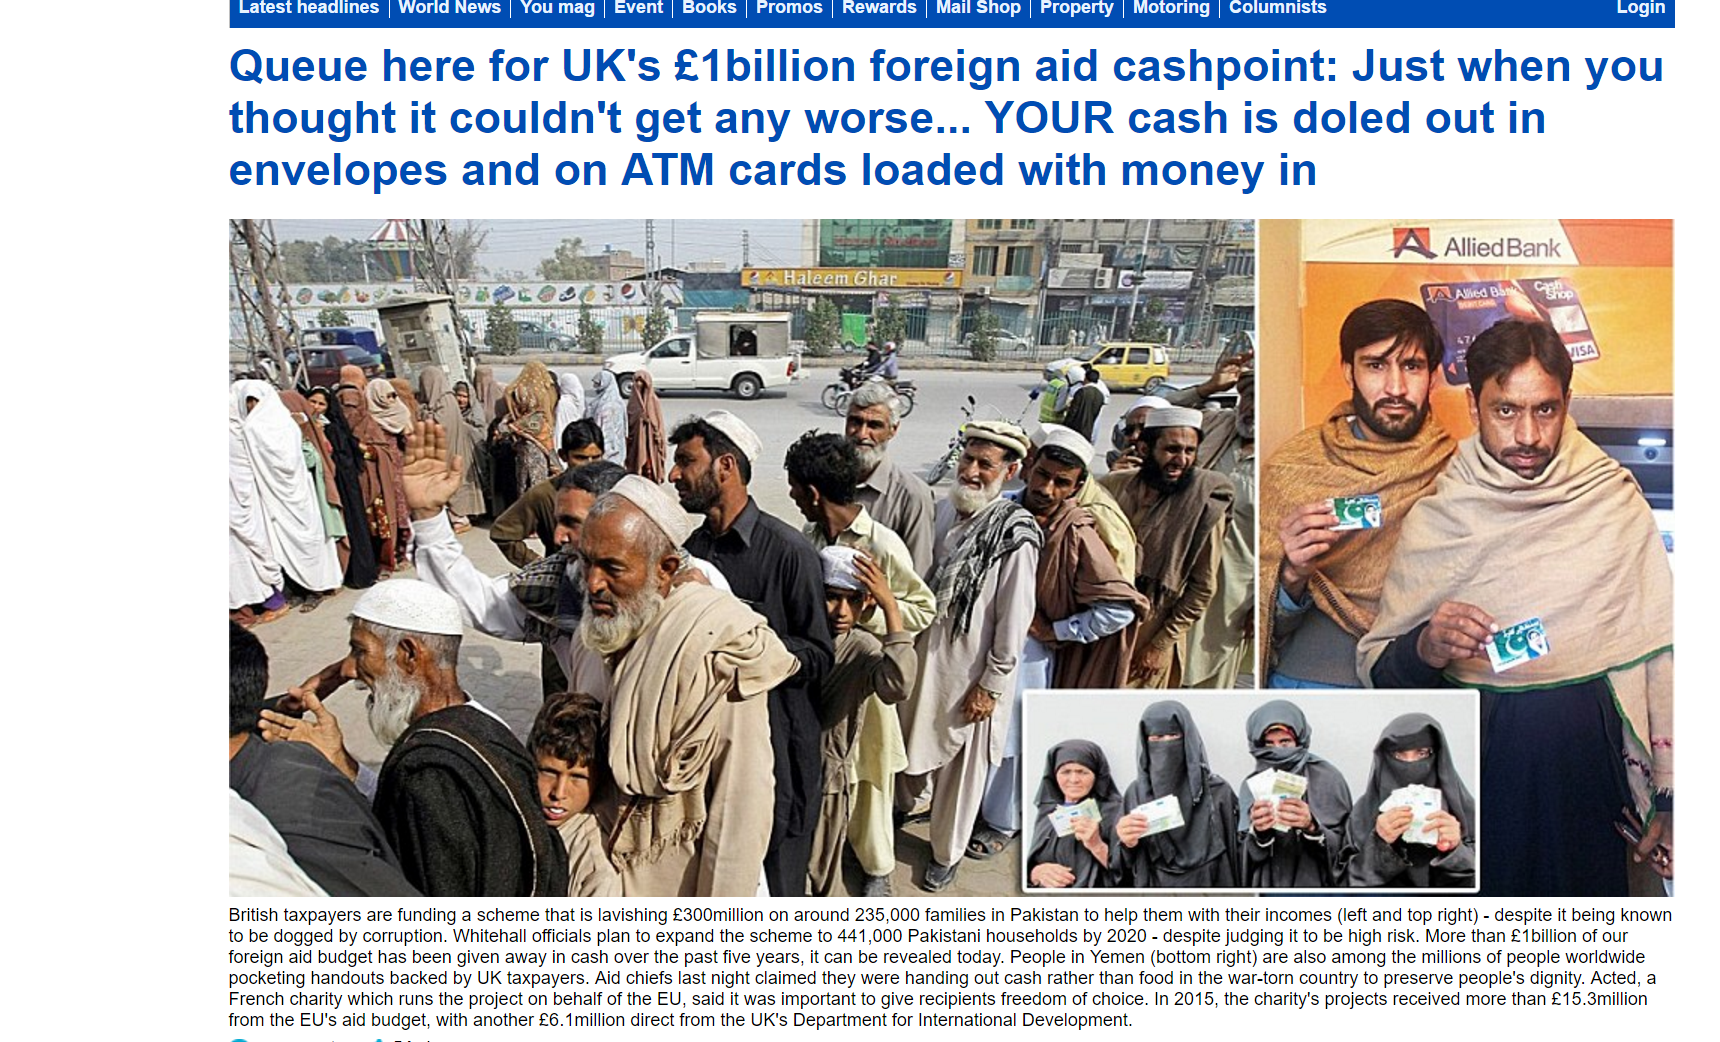 news article queue foreign cashpoint just thought couldn worse cash doled envelopes cards loaded mon